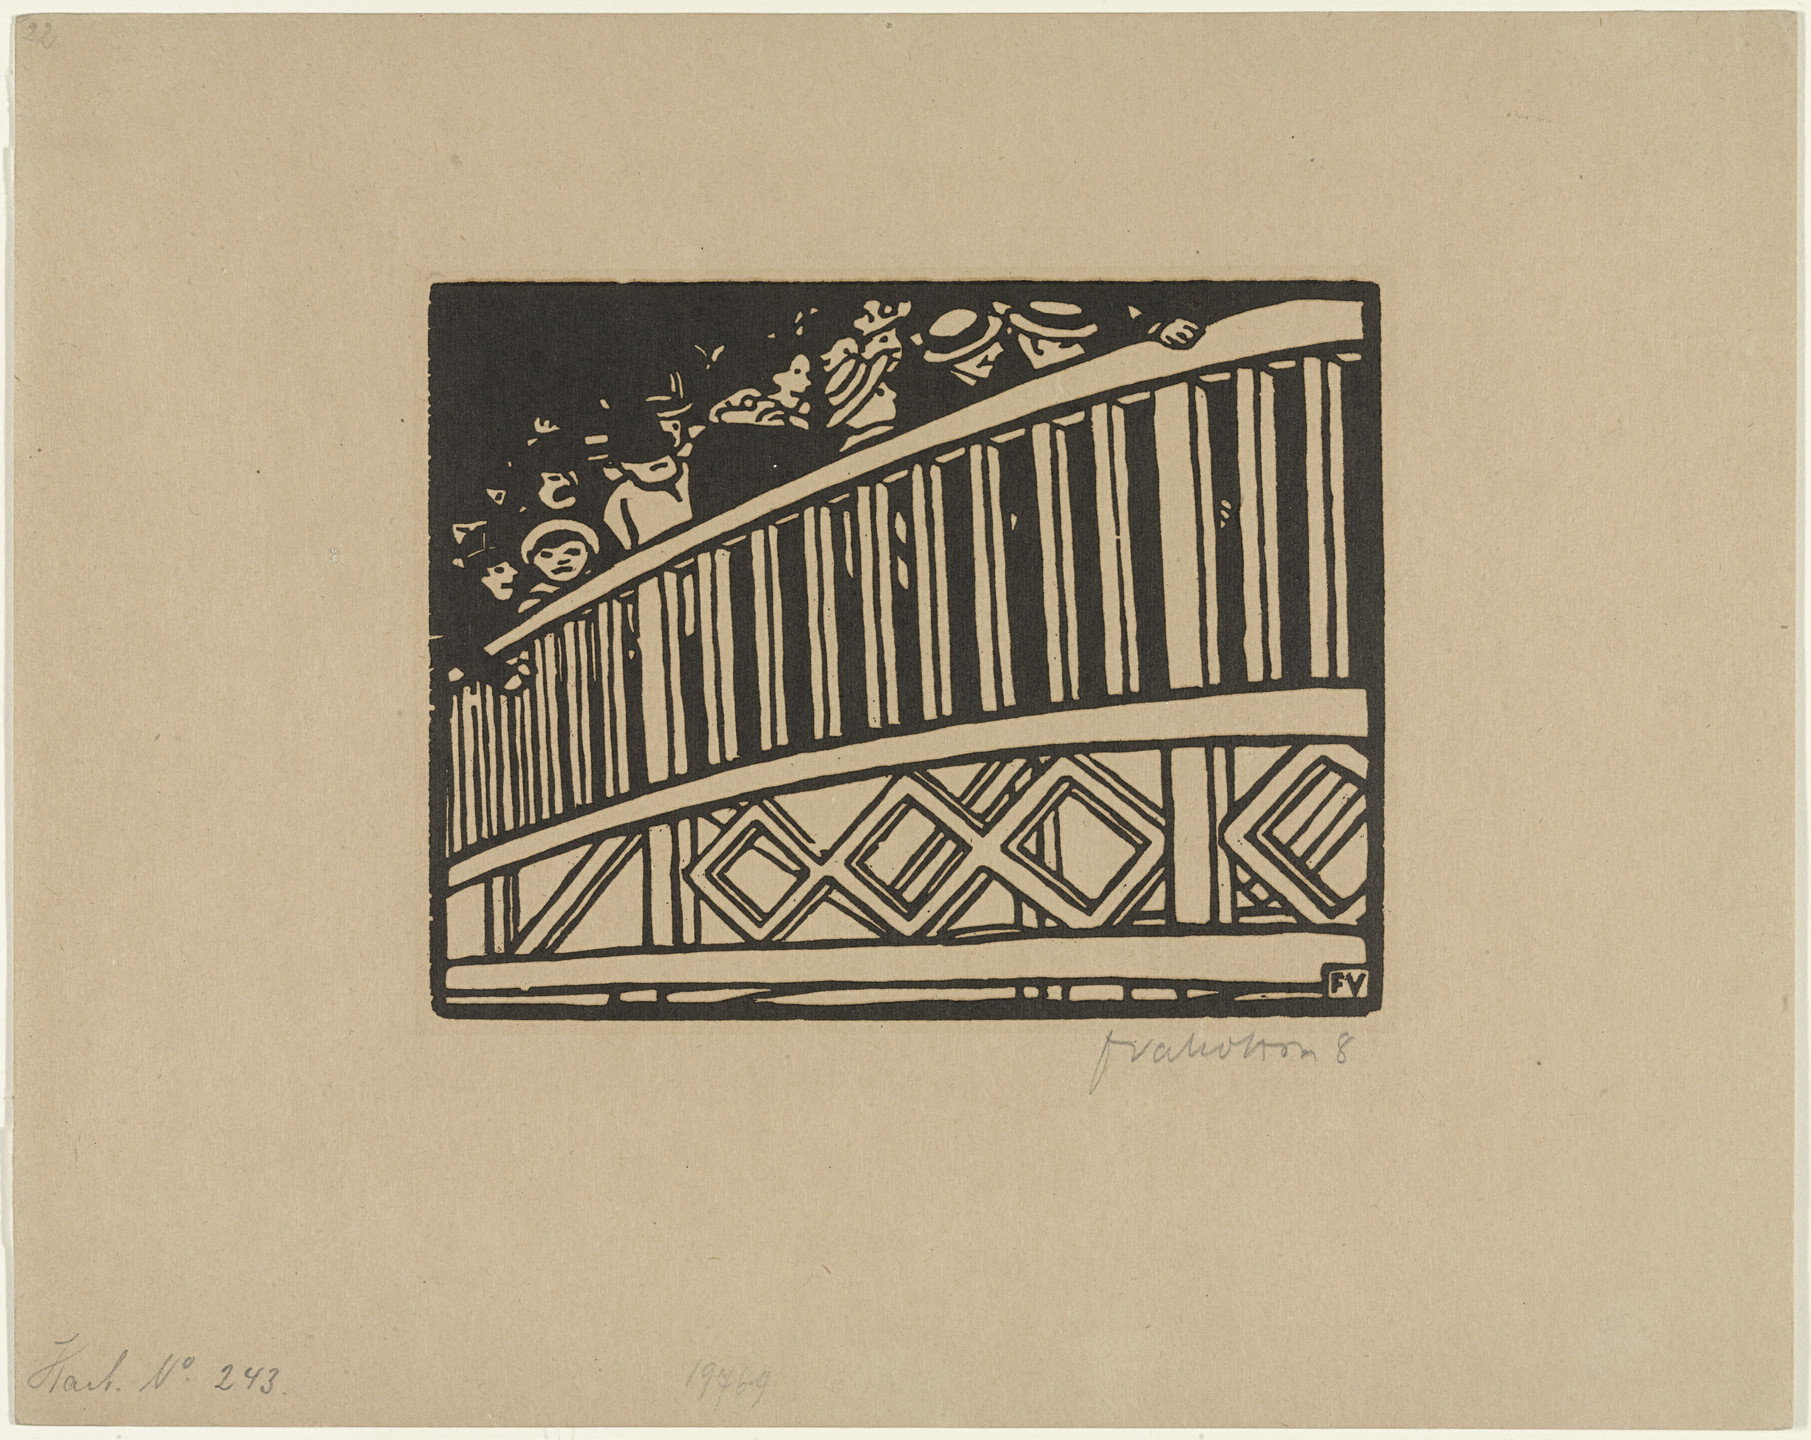 Félix Vallotton. The Moving Footway (plate I) from The World's Fair (L'Exposition Universelle). 1901